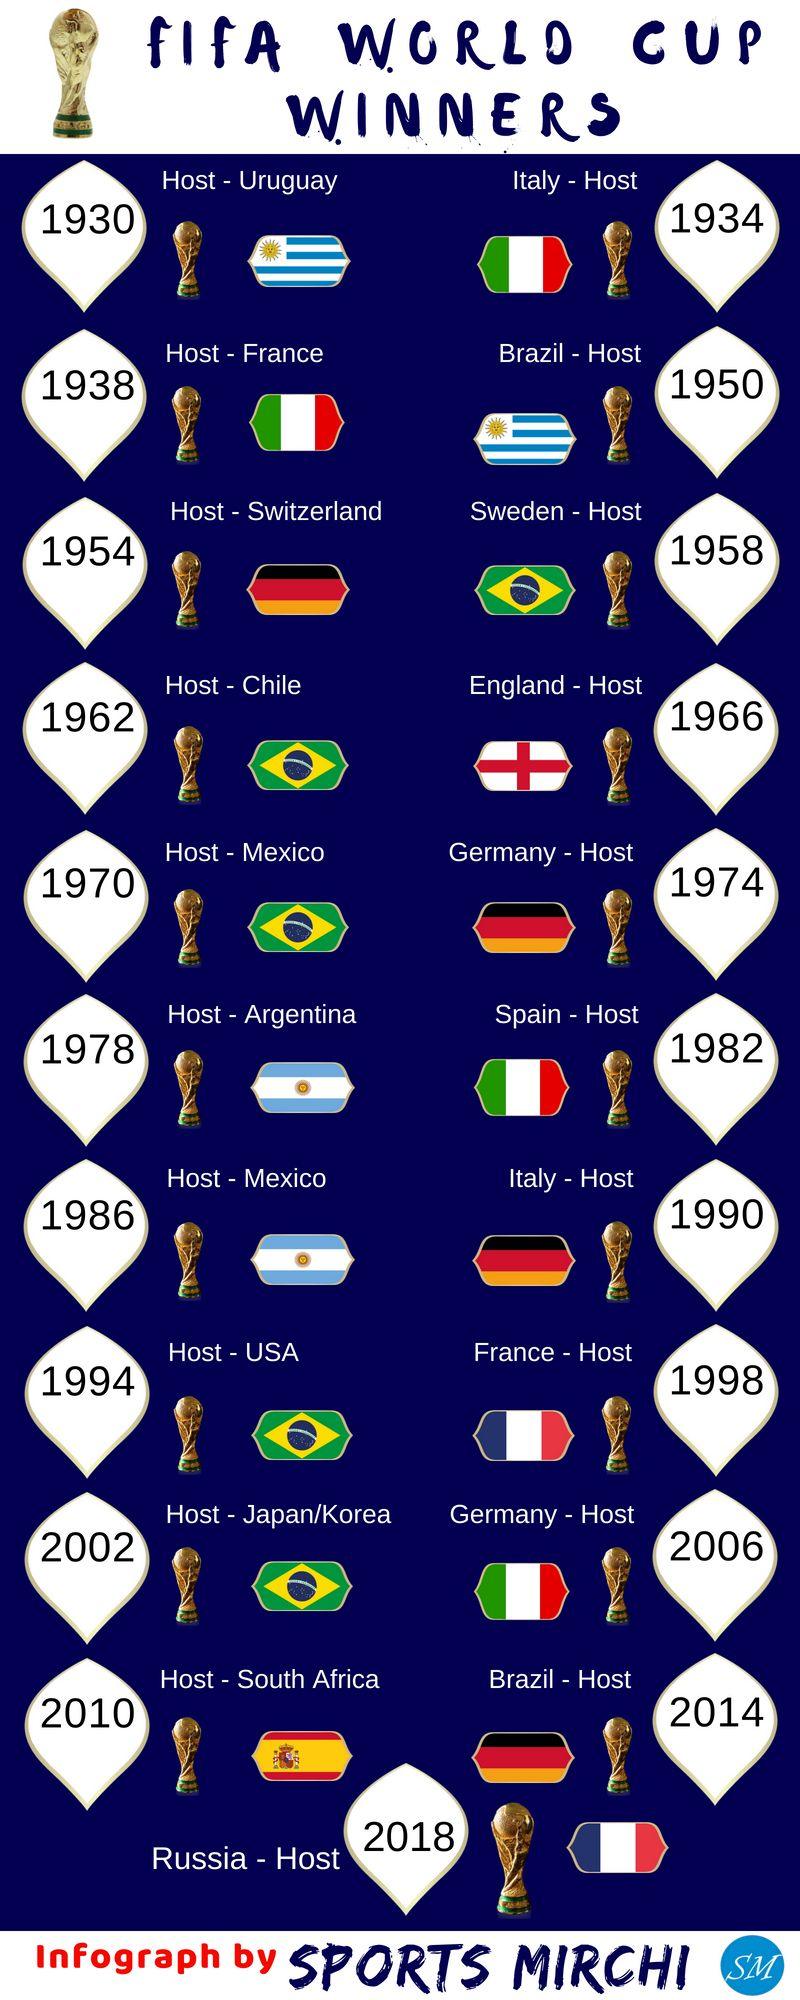 Fifa World Cup Winners From 1930 To 2018 Infograph Fifaworldcup Football France Brazil Germany Italy Spain World Cup Winners Fifa World Cup Champions